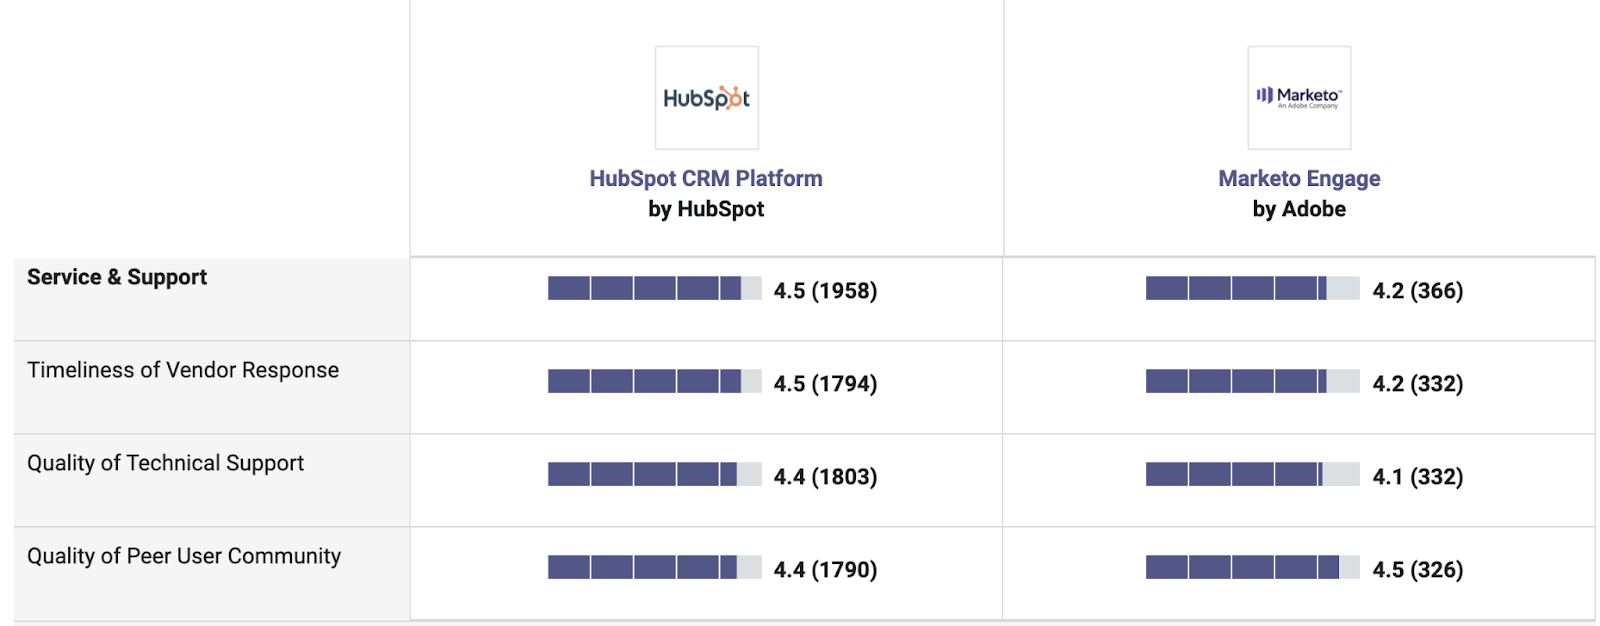 Service and support comparison chart between HubSpot and Marketo